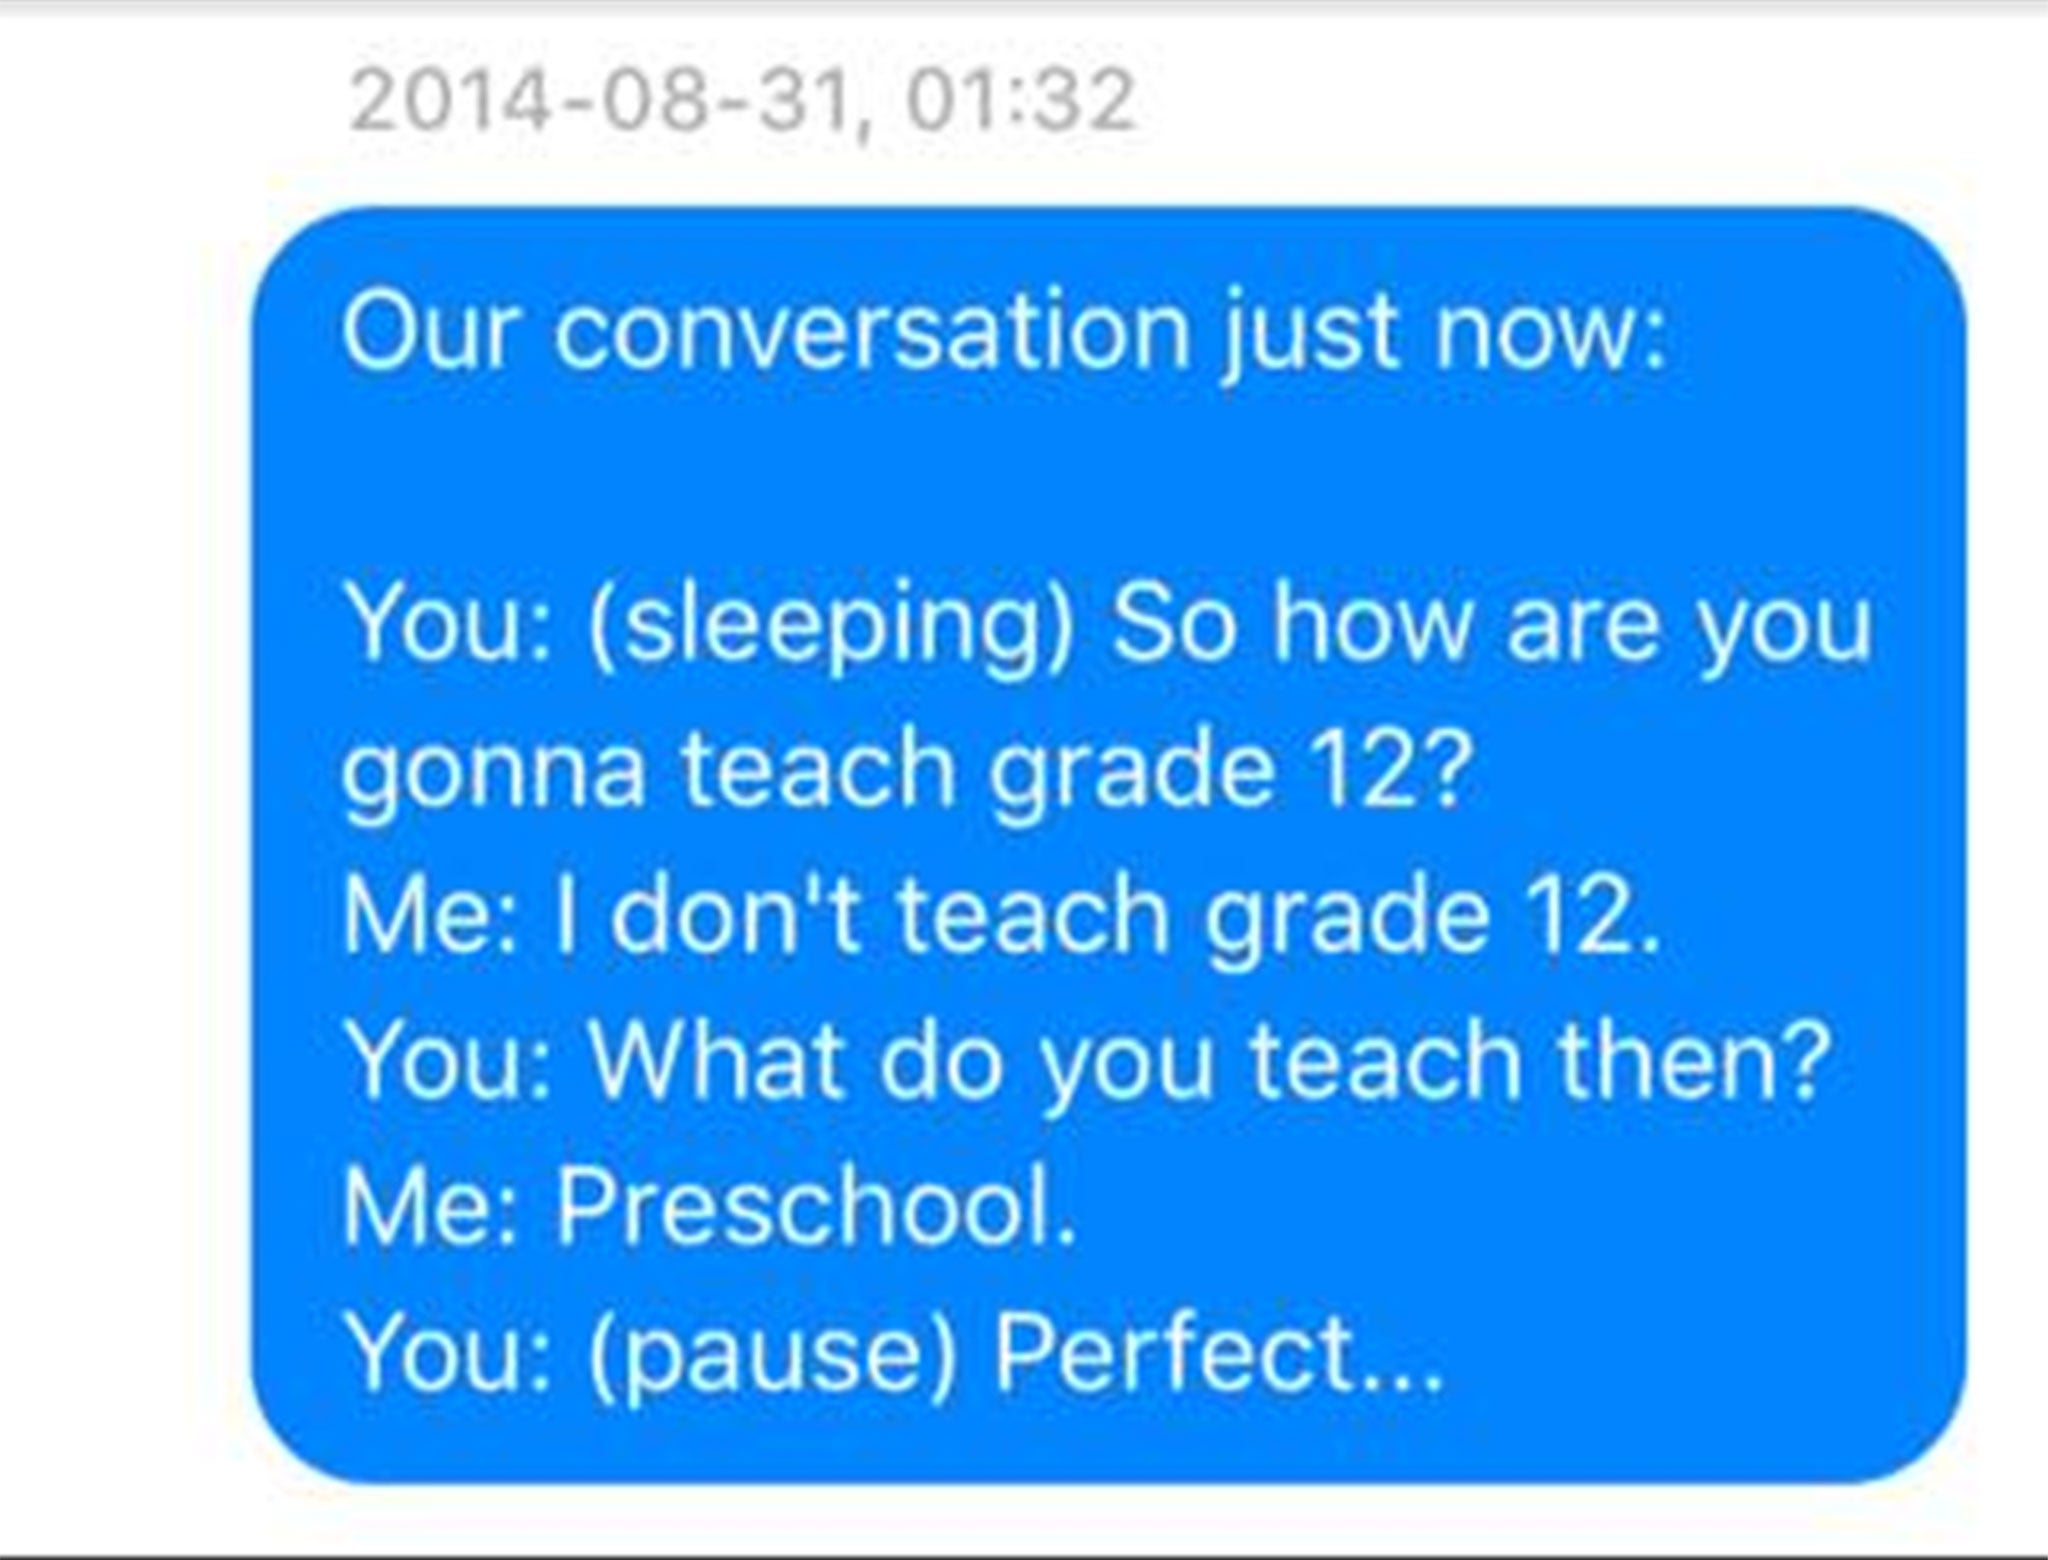 Woman writes down everything her husband says in his sleep and texts